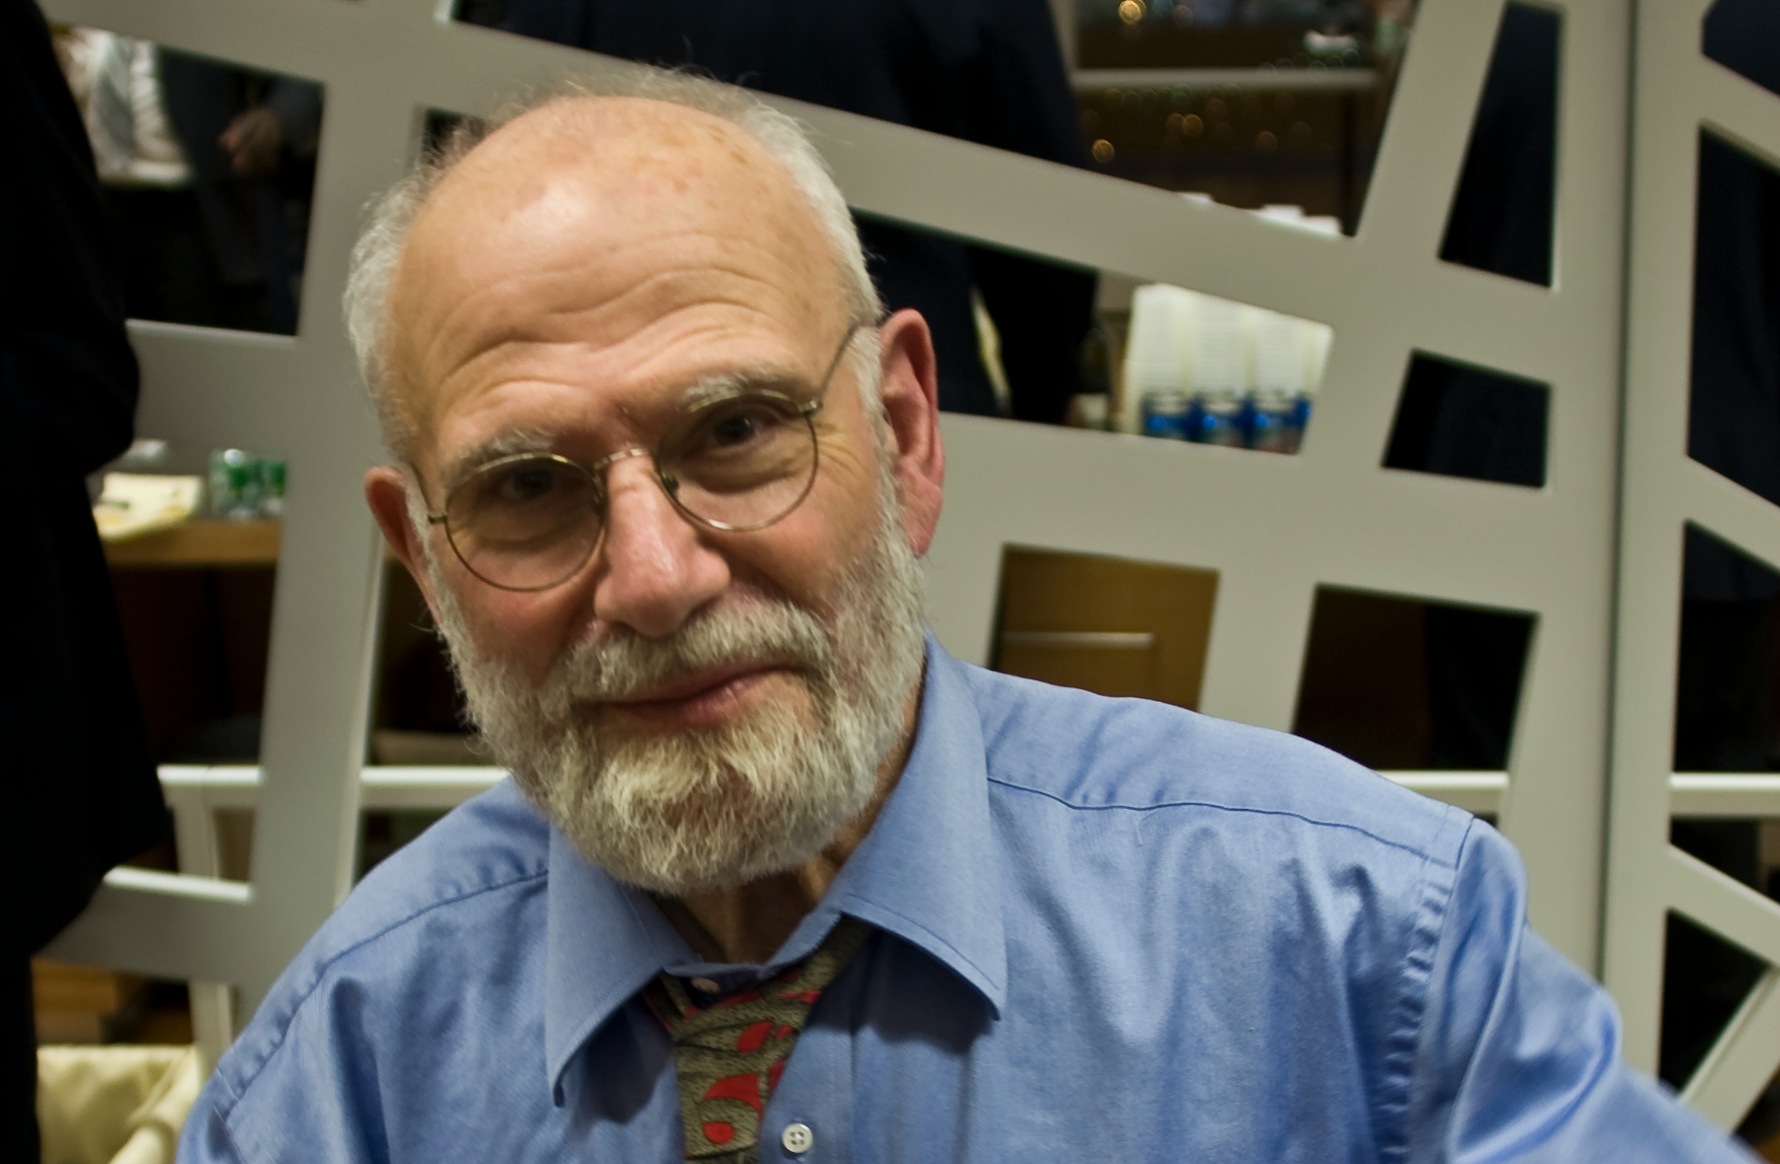 Renowned Neurologist And Author Oliver Sacks Dies At 82